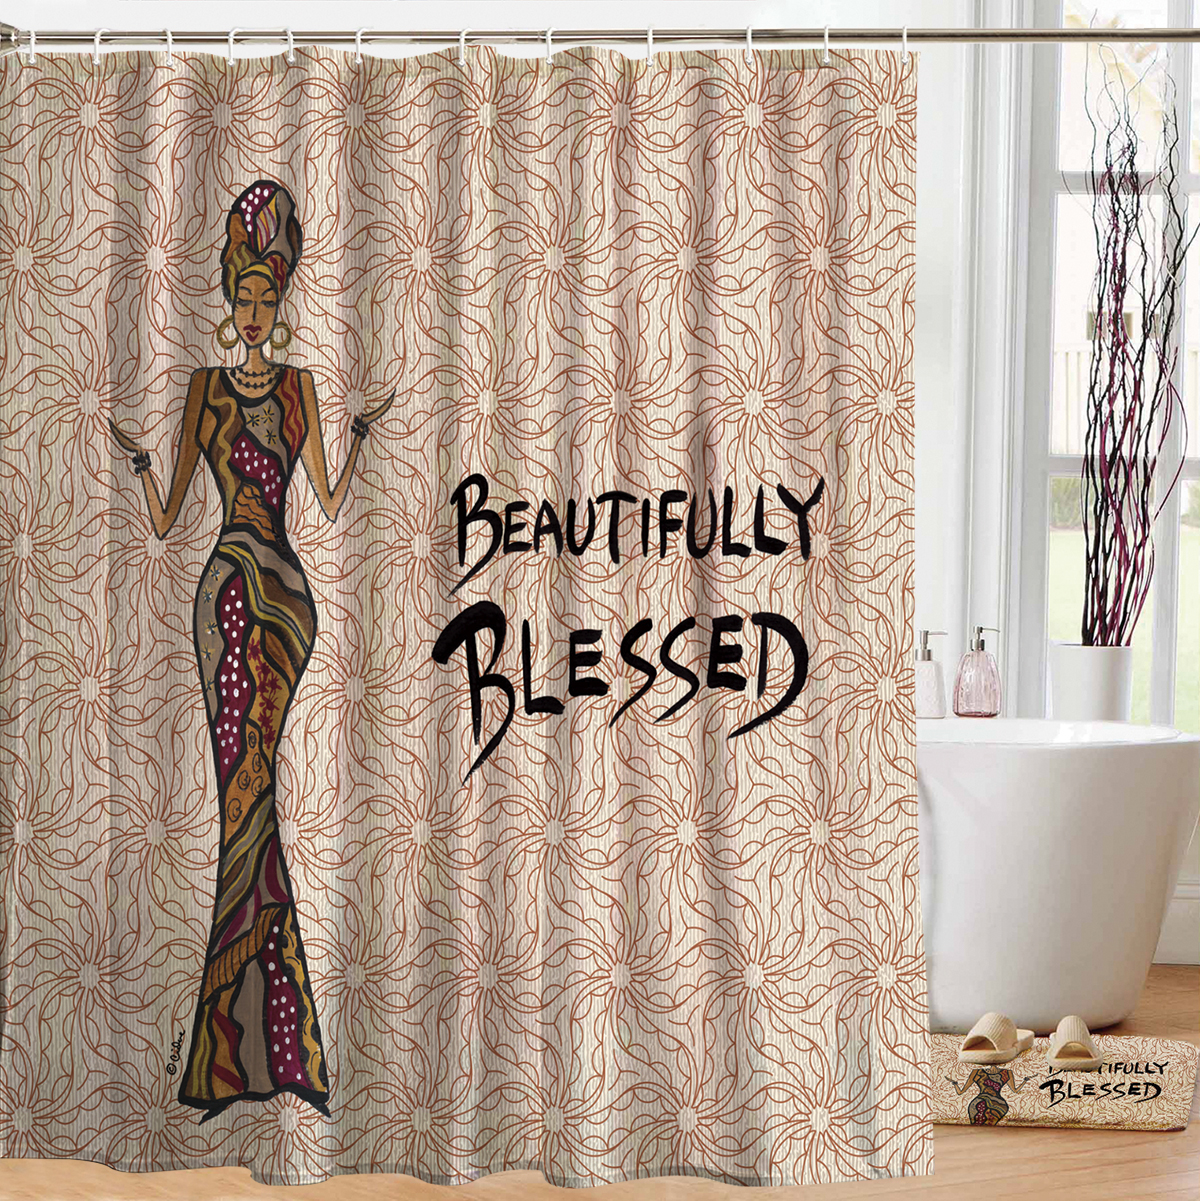 beautifully blessed designer shower curtains